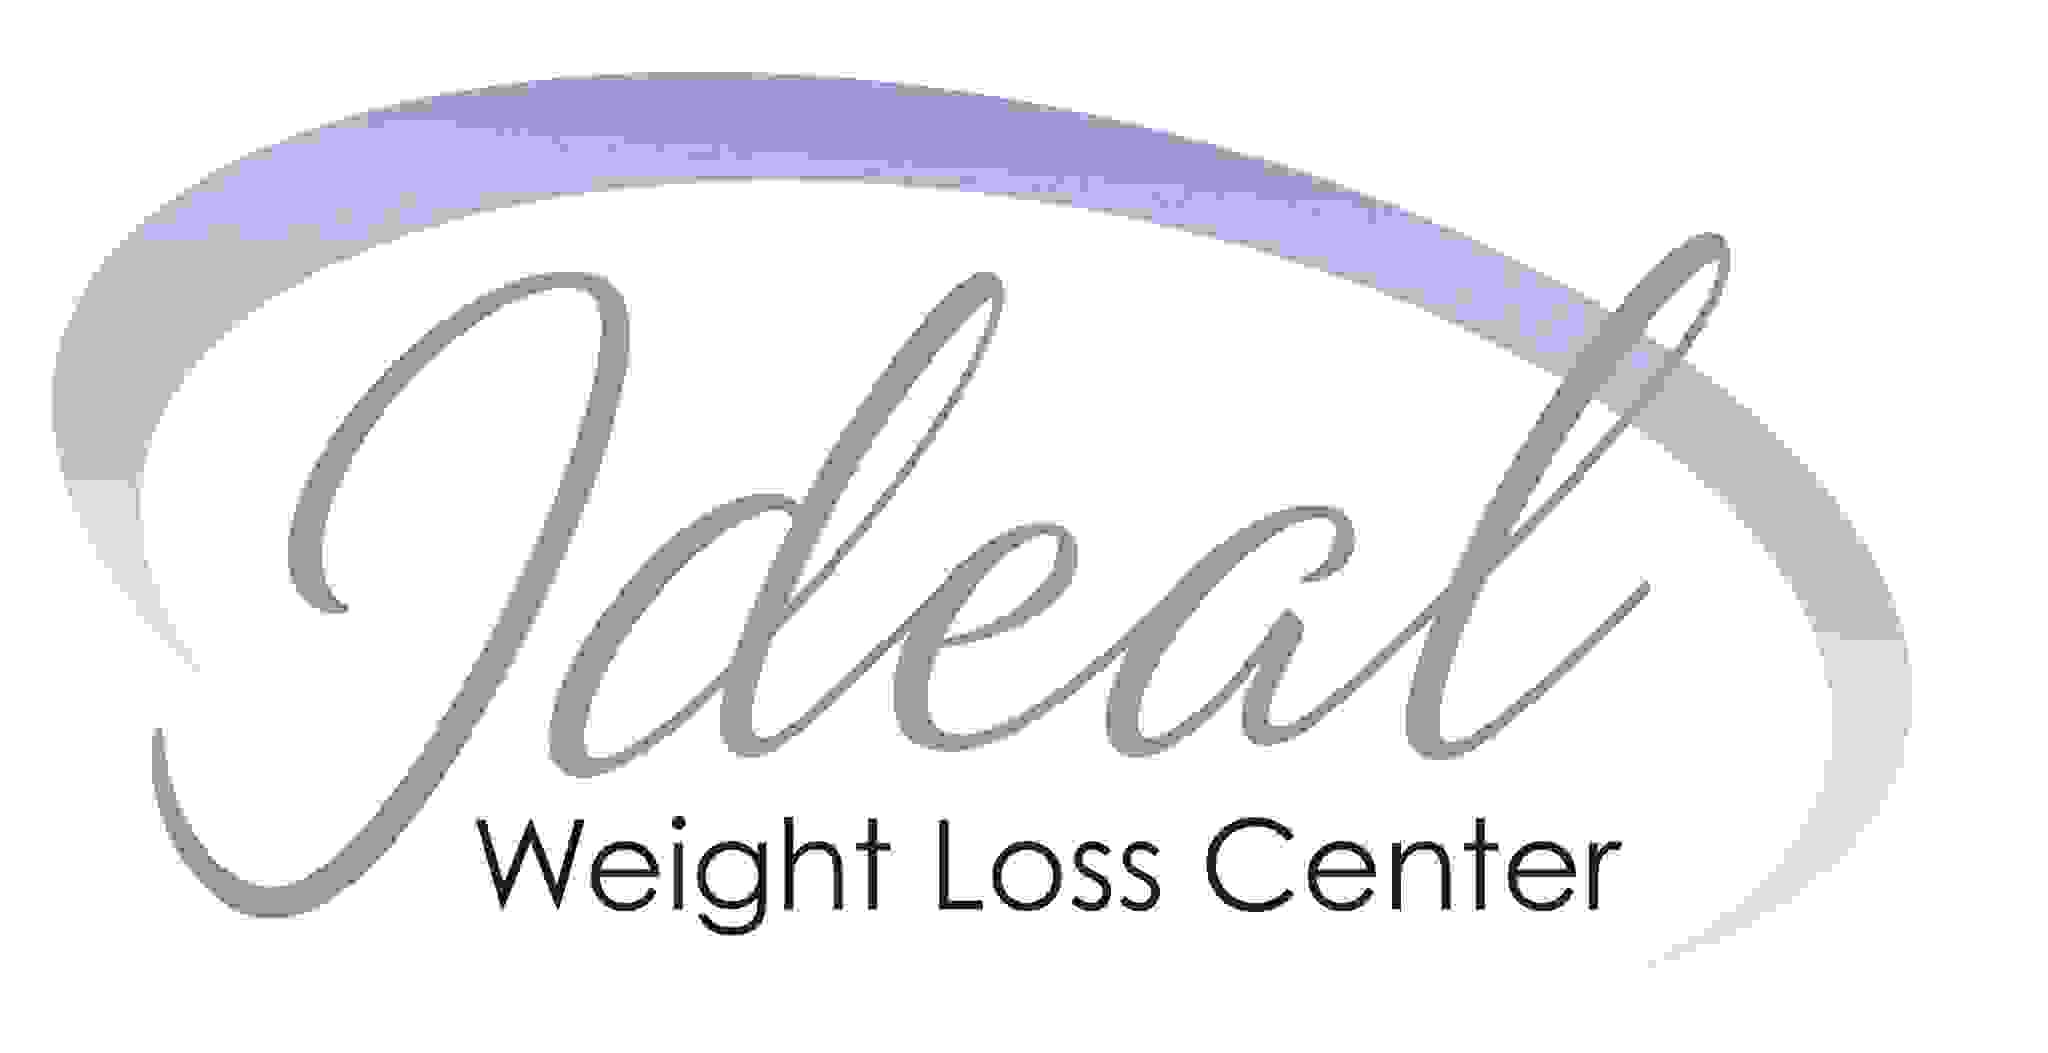 Weight Loss Center, Nutrition, Healthy Eating Plan